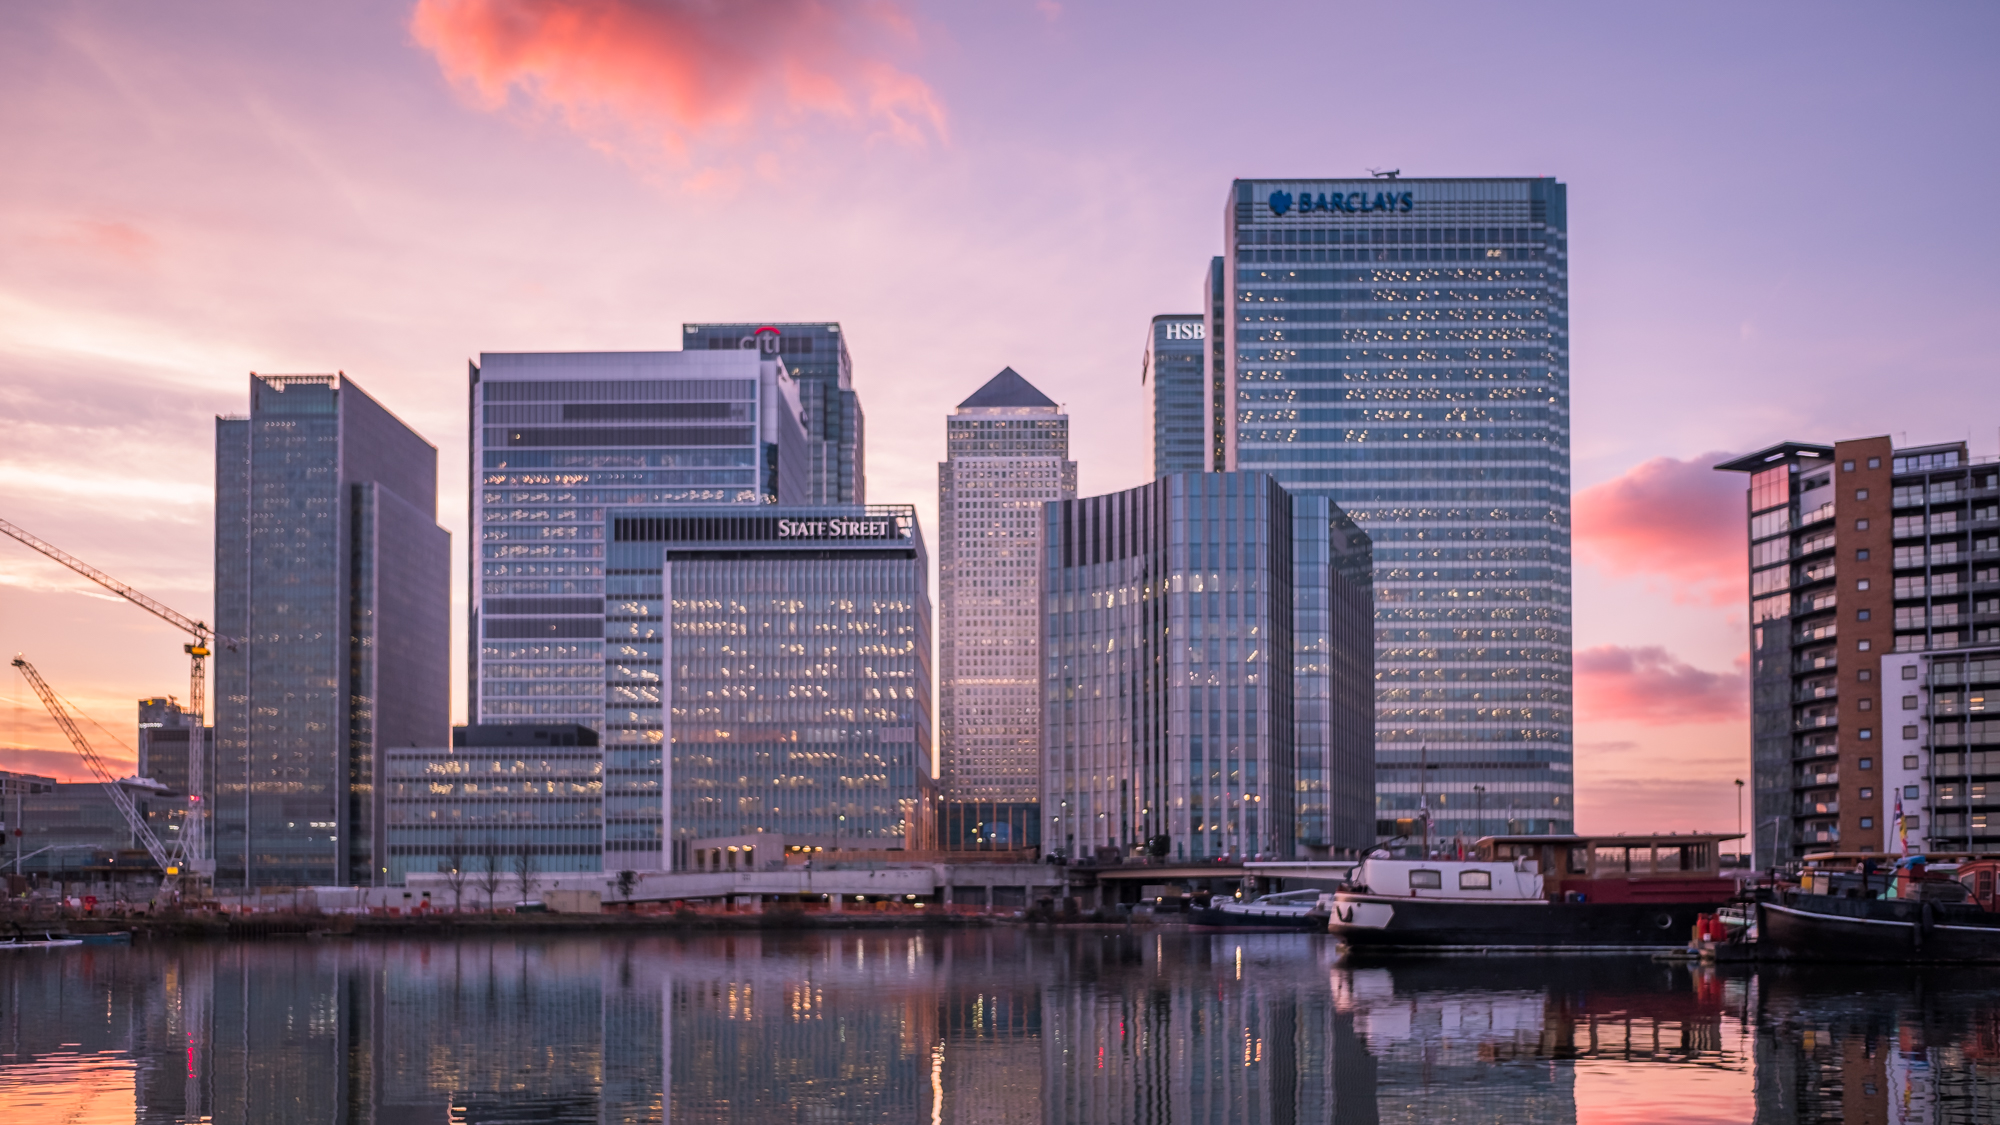 Retouched photo of Canary Wharf taken during a time-lapse by Trevor Sherwin